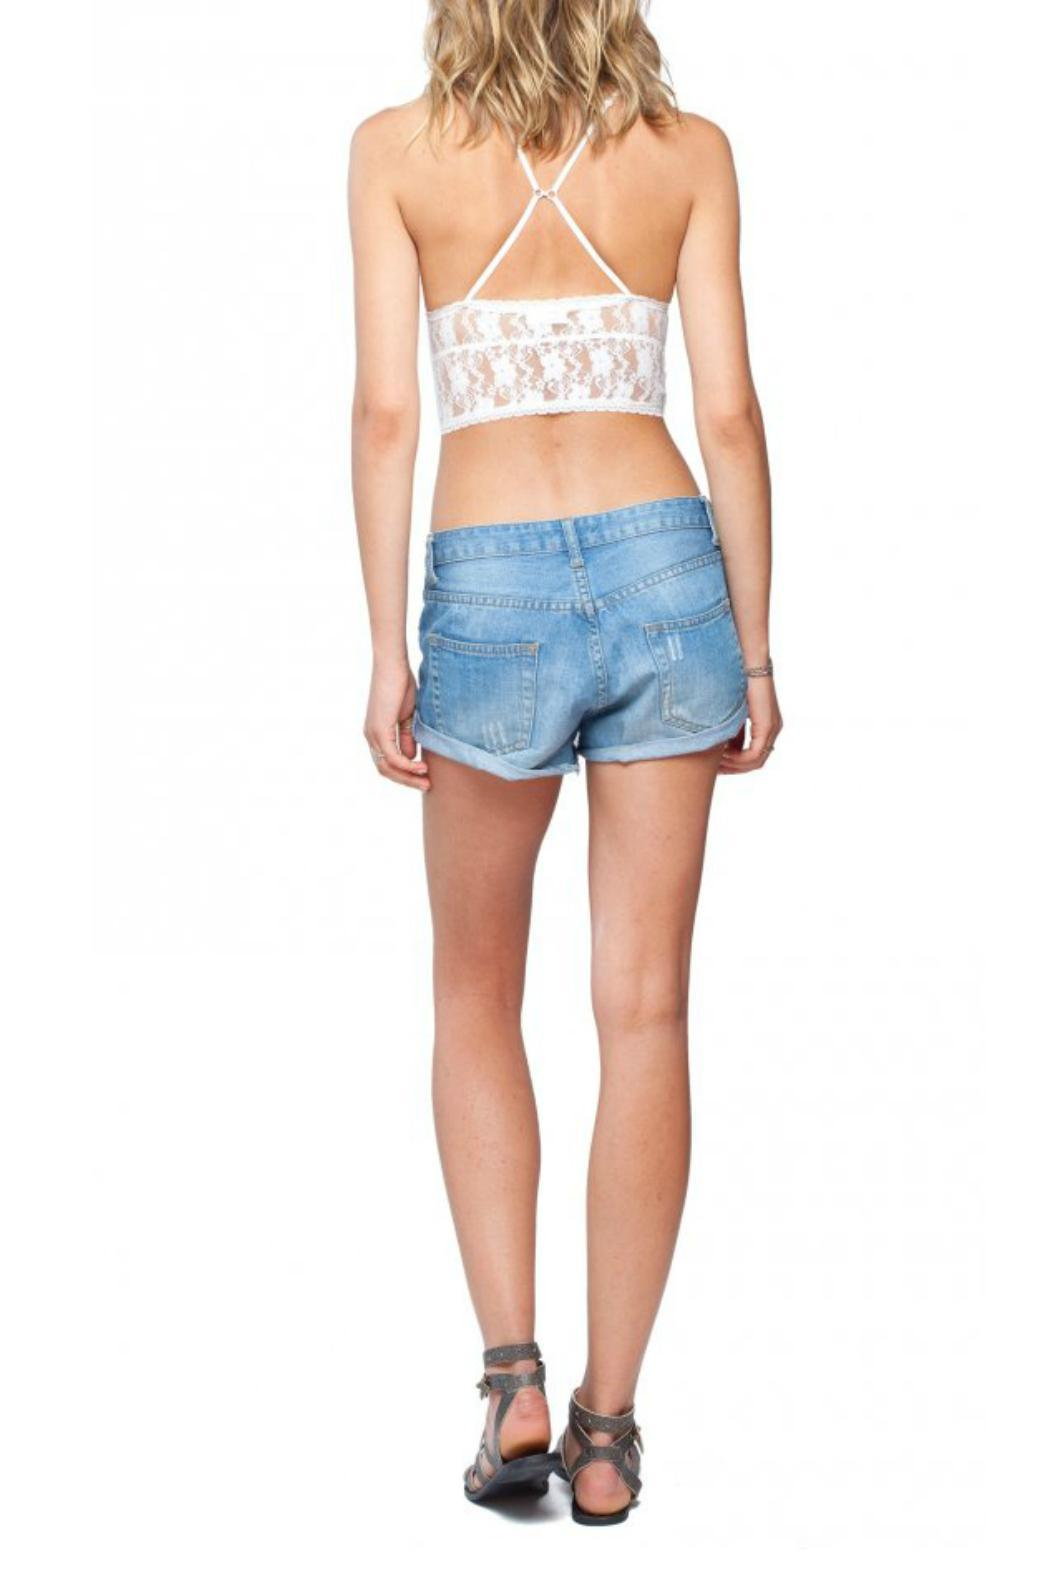 Gentle Fawn Convertible Lace Bralette - Back Cropped Image